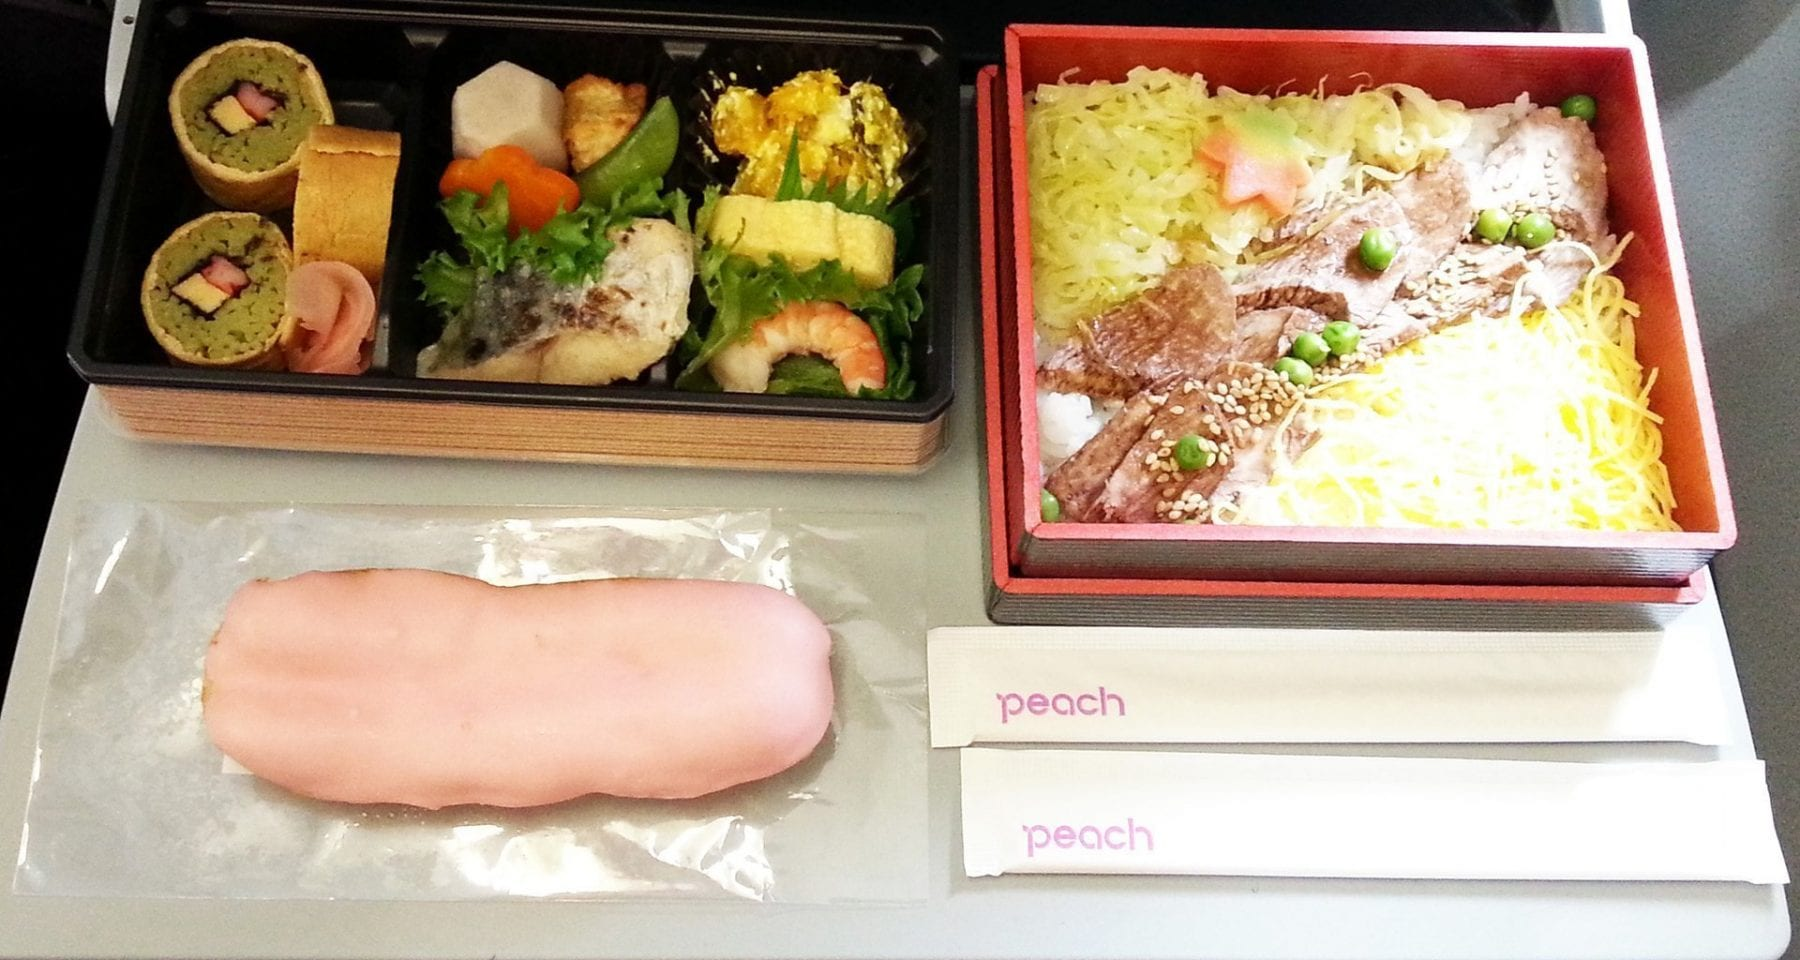 Inflight meals on Japanese Airline Peach